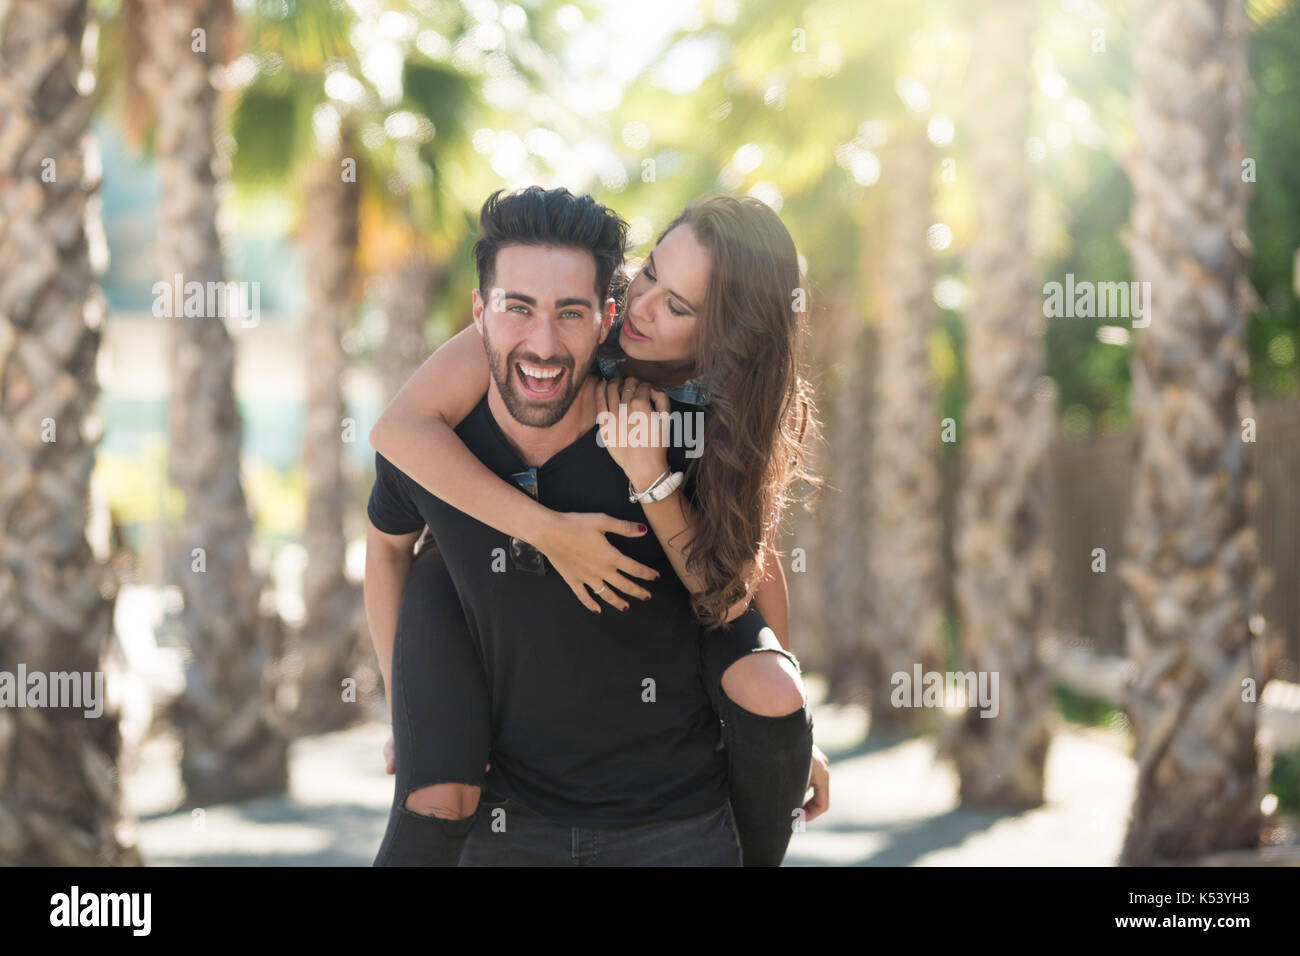 Portrait of young happy man giving his girlfriend a piggyback ride - Stock Image